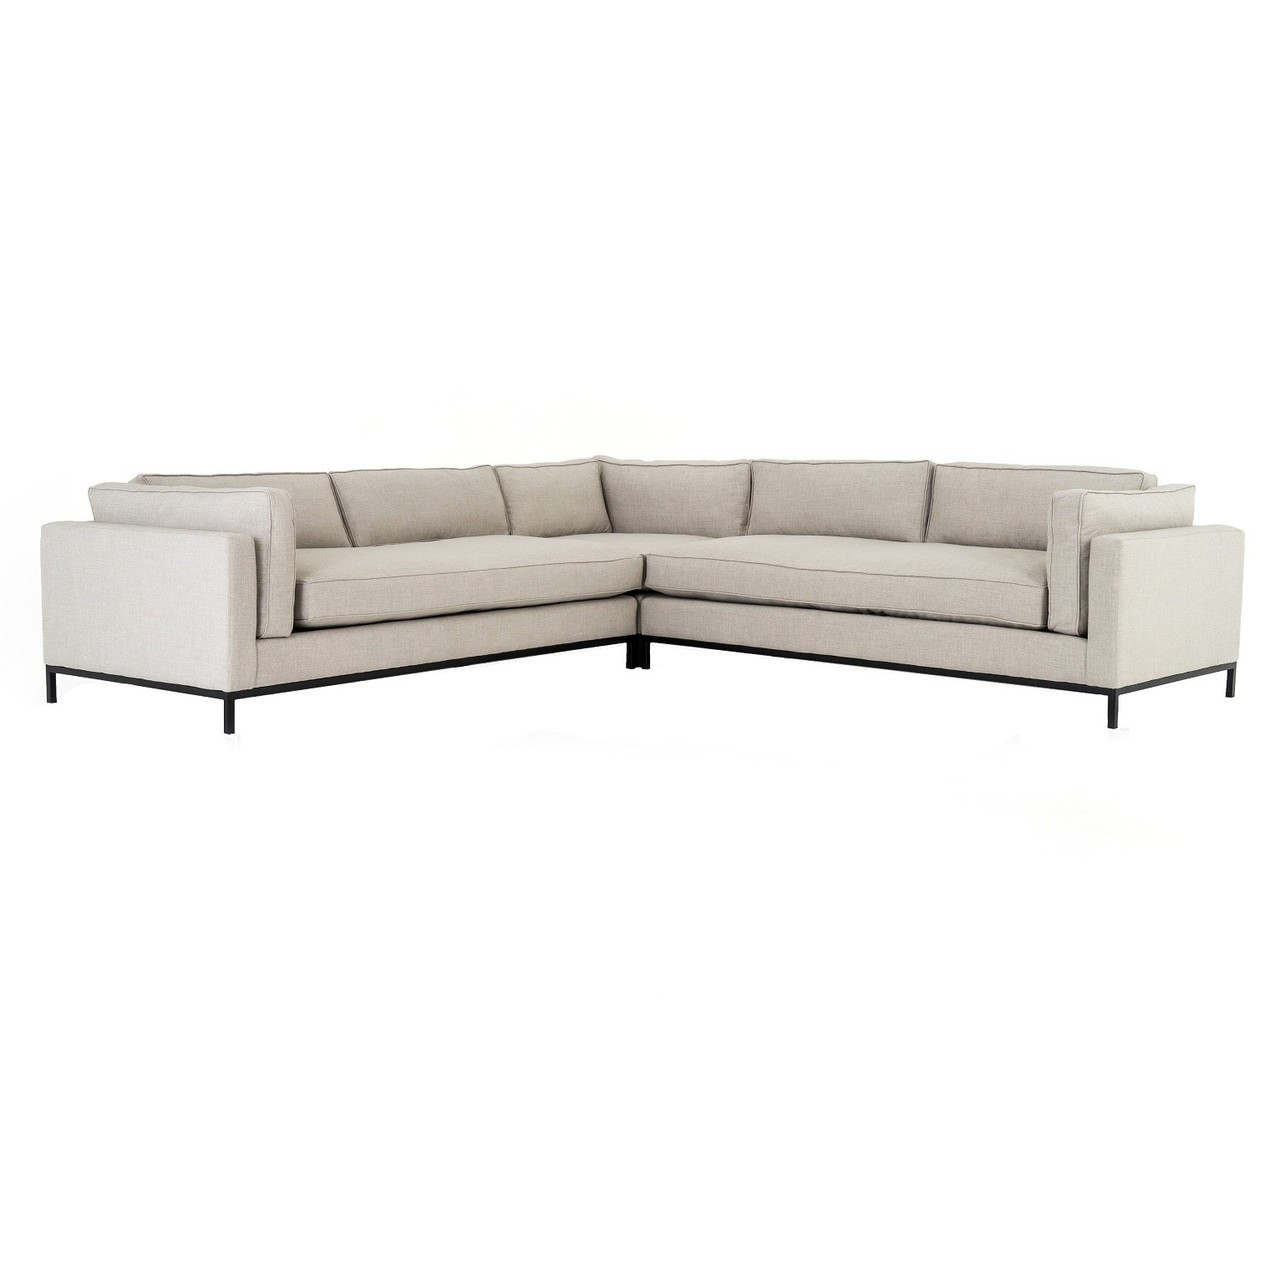 Grammercy Modern Neutral Fabric 3 Piece Corner Sectional Sofa 120